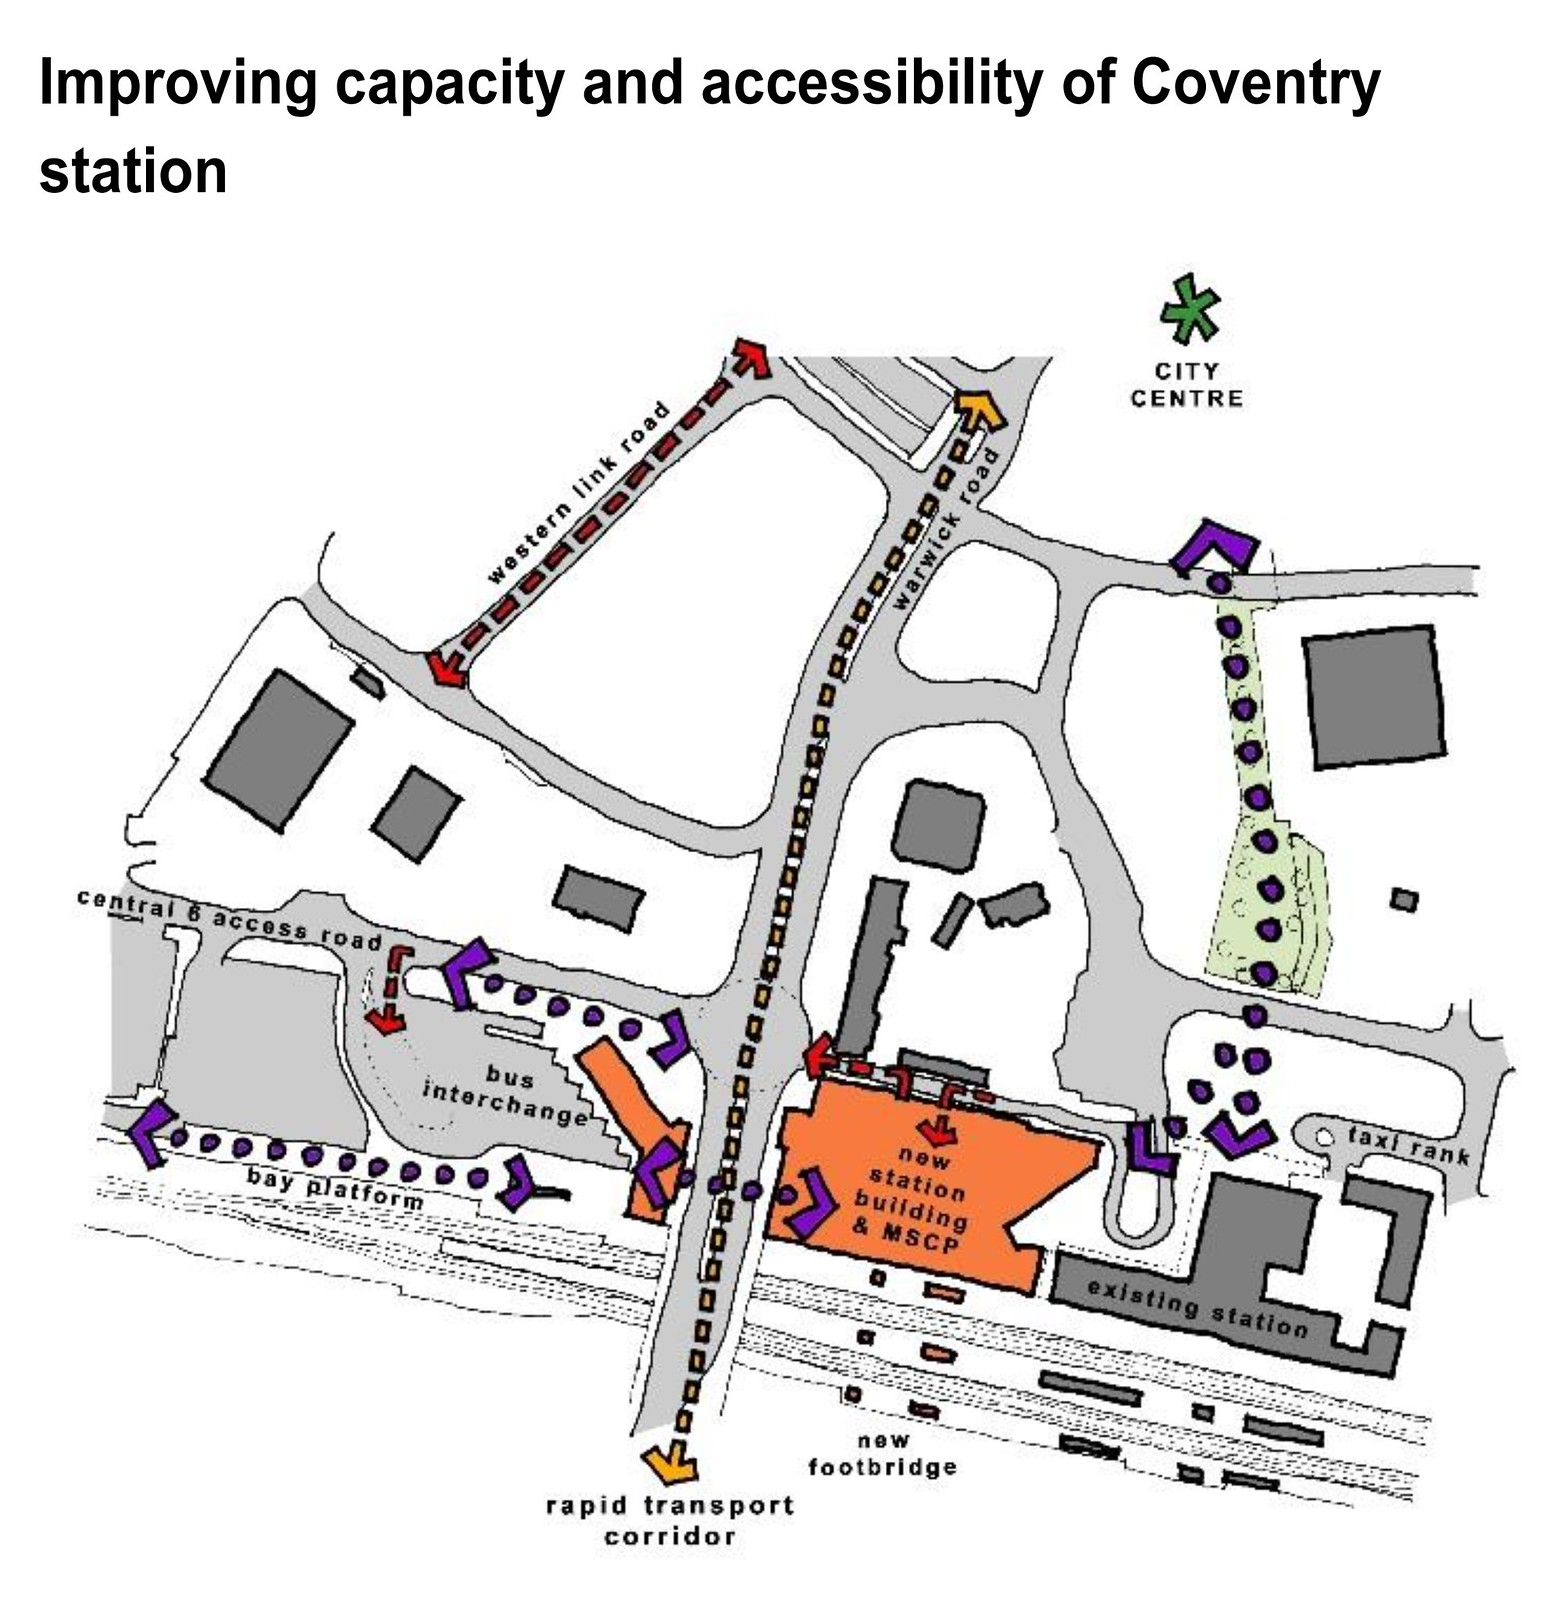 One Coventry Plan Annual Performance Report 2018-19 10 Coventry railway station